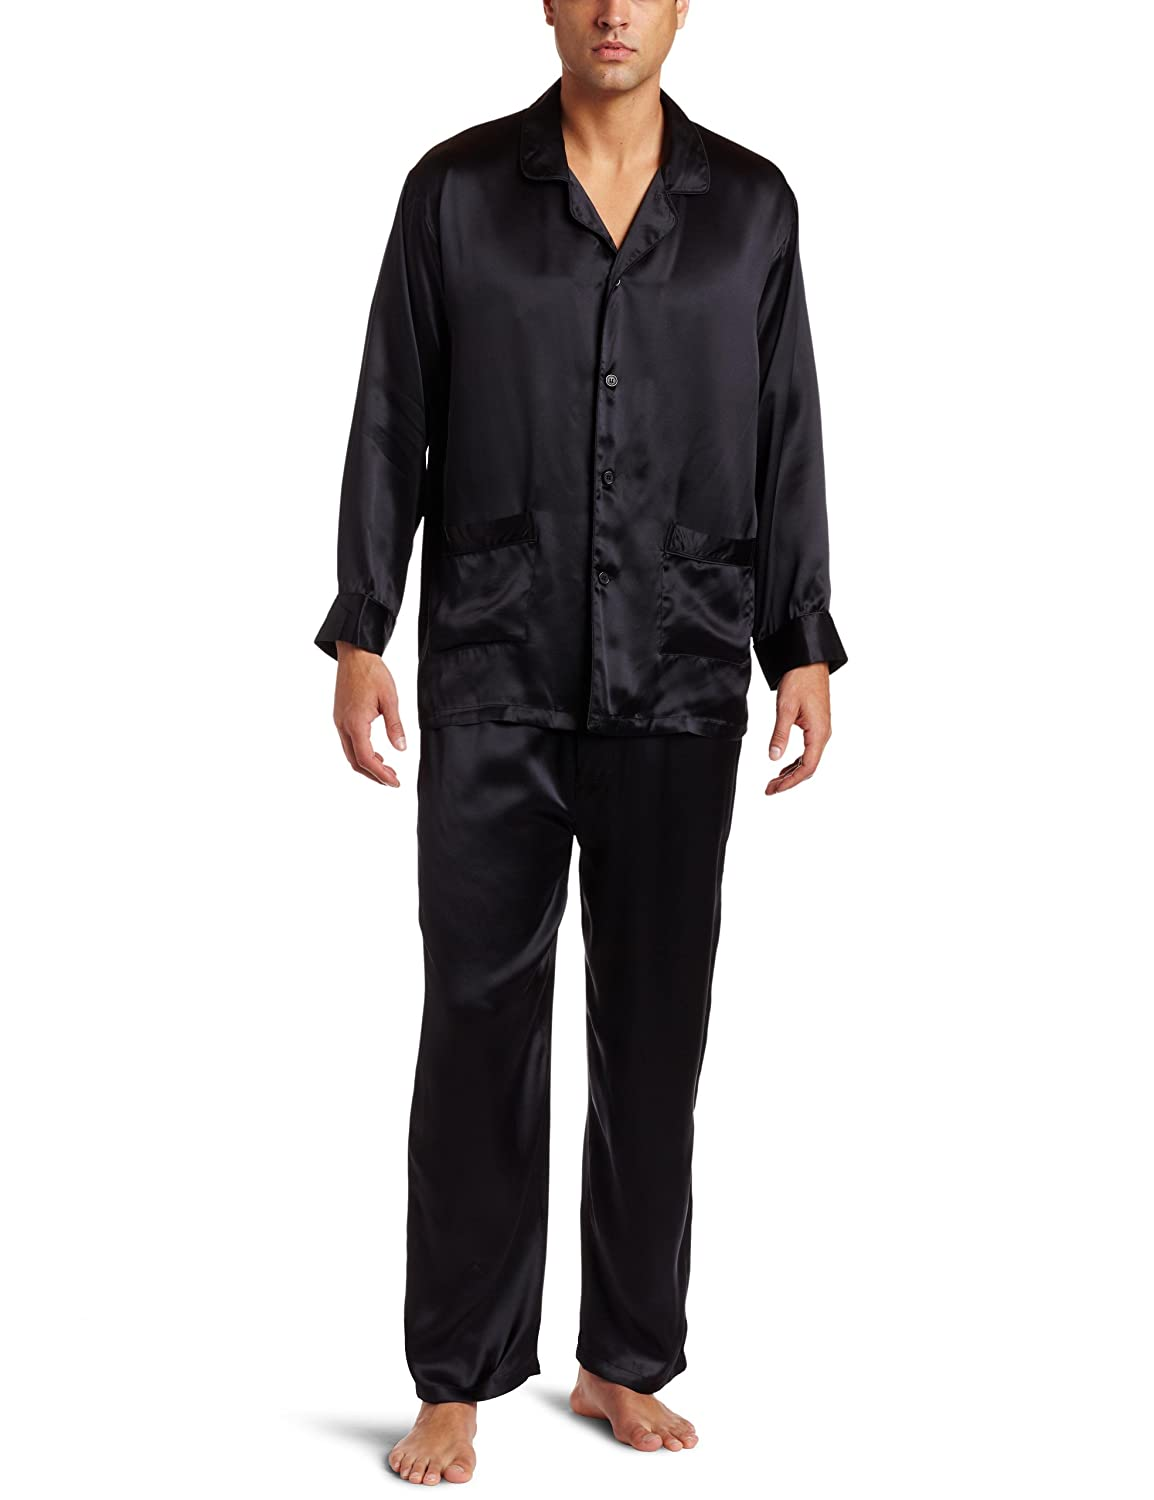 Black Silk Pajamas: Stylish Men's Silk Pajamas For 2015